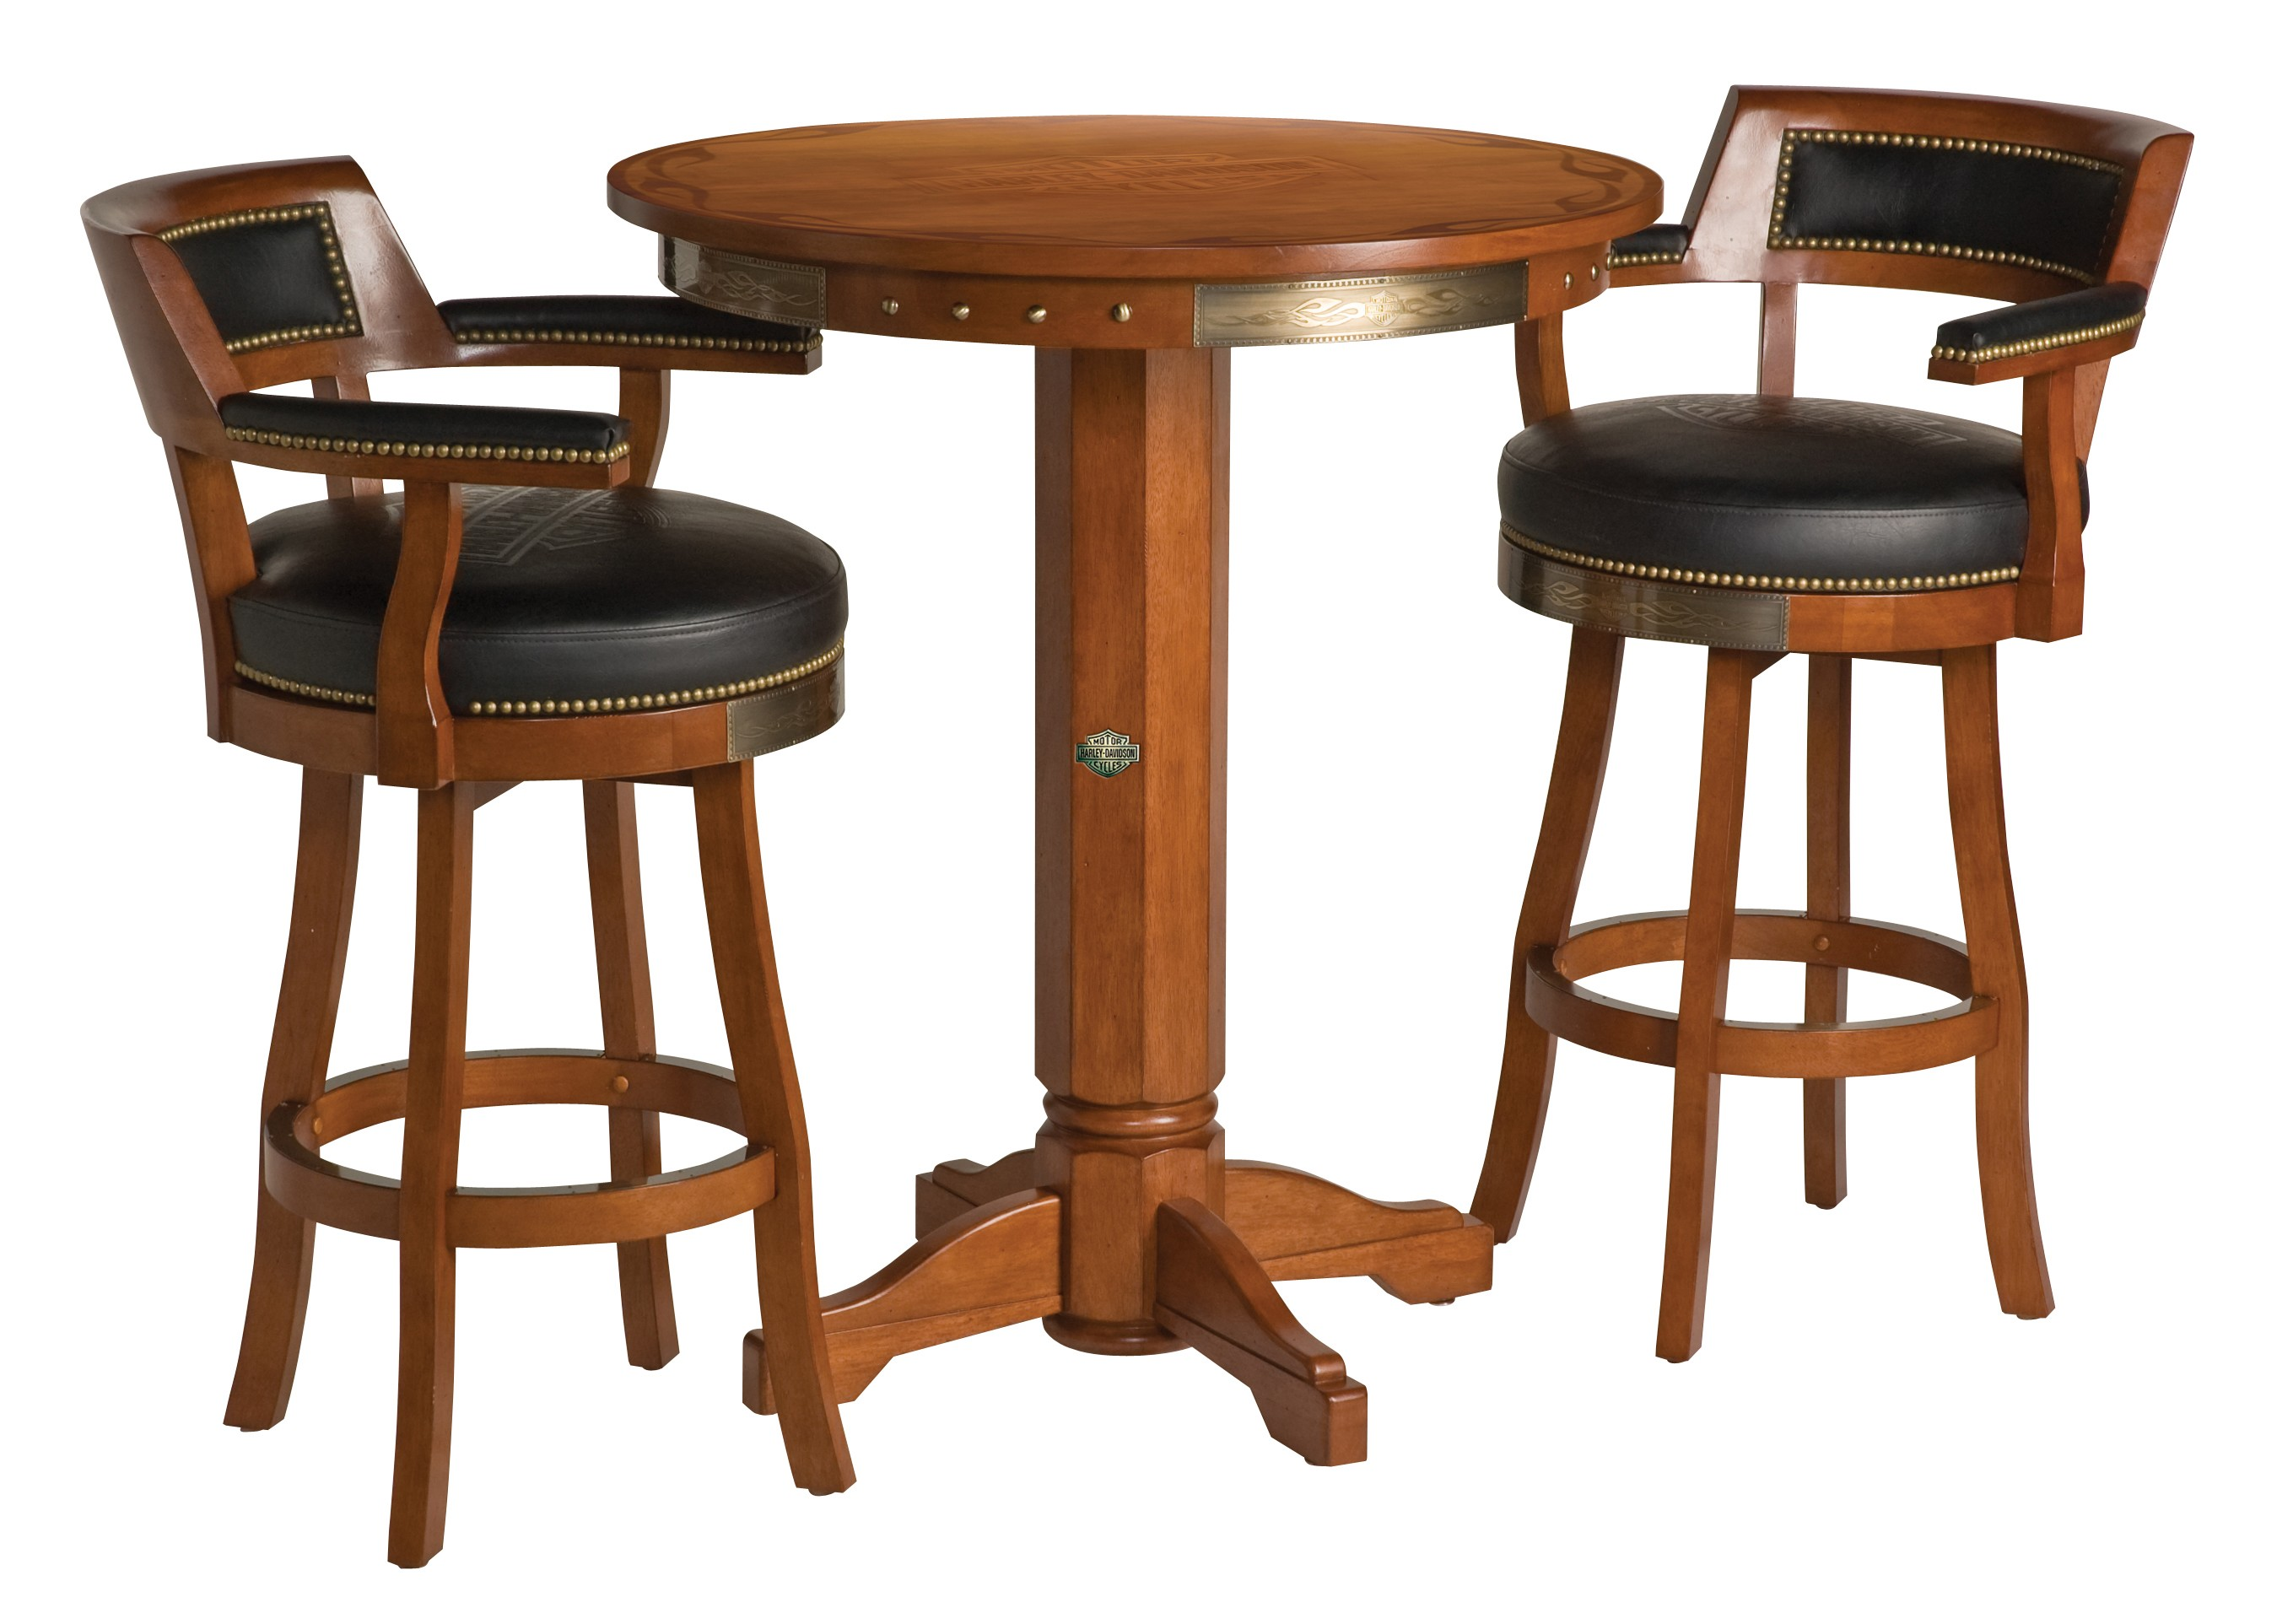 Harley-Davidson B&S Flames Pub Table & Backrest Stool Set Heritage Brown HDL-13201-H